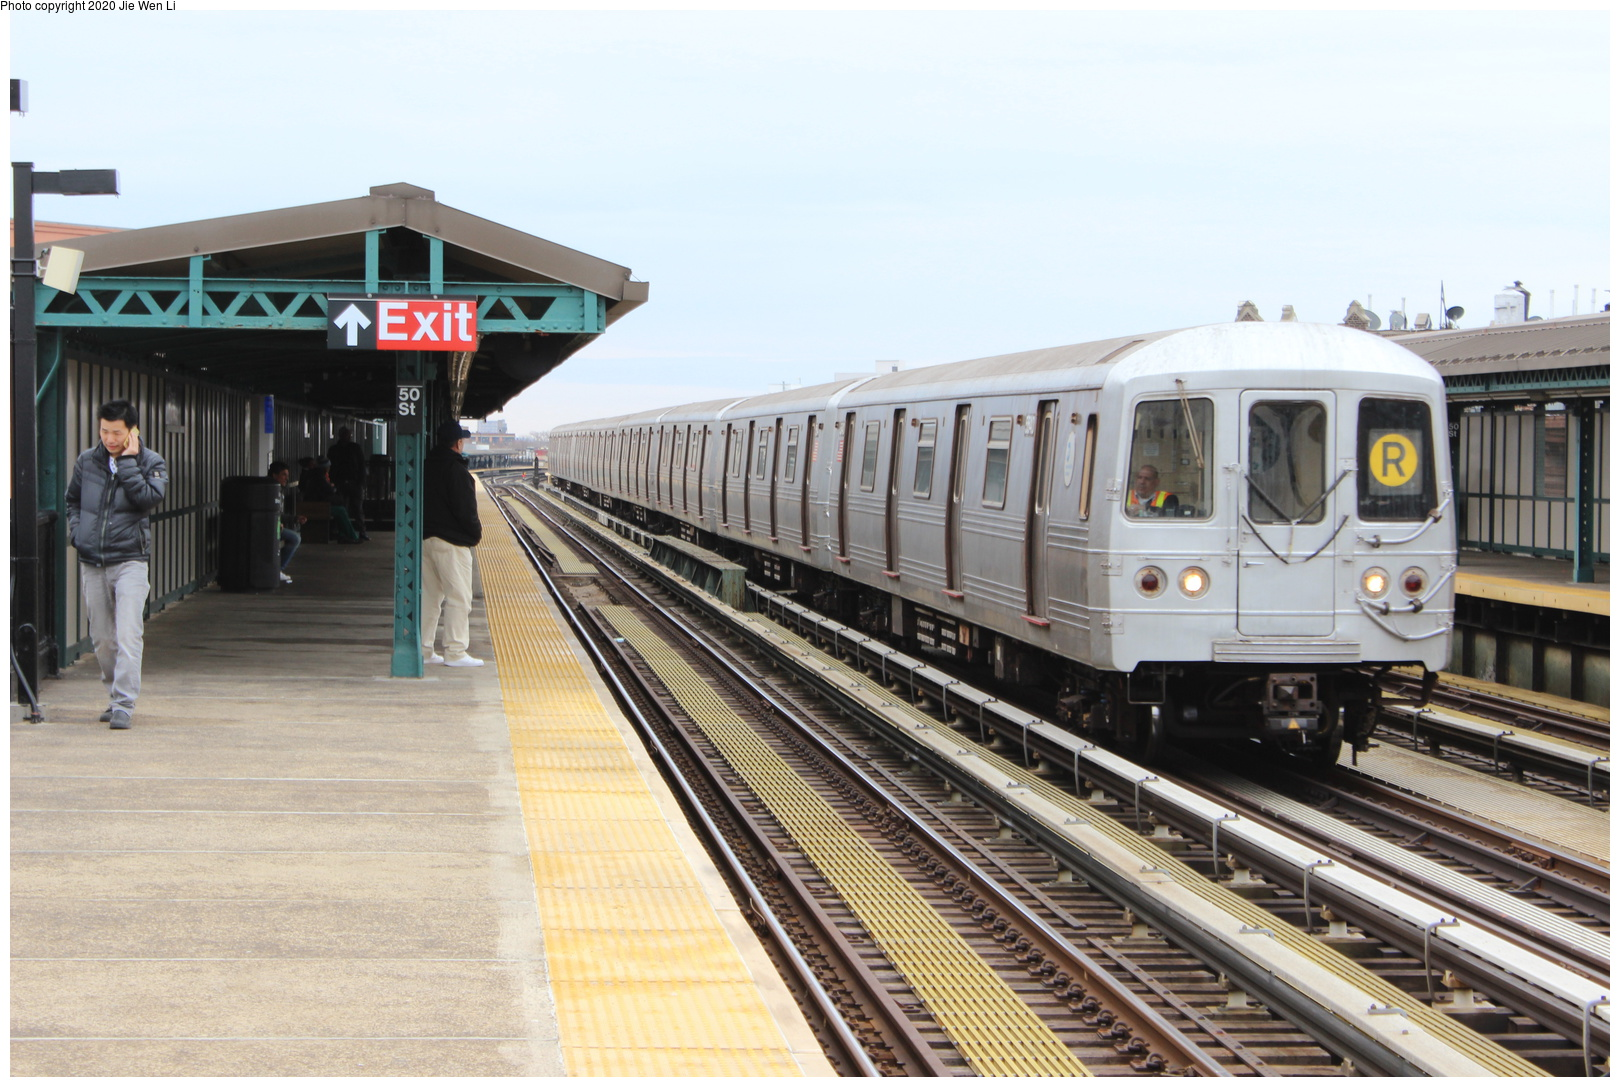 (188k, 1044x694)<br><b>Country:</b> United States<br><b>City:</b> New York<br><b>System:</b> New York City Transit<br><b>Line:</b> IRT Flushing Line<br><b>Location:</b> 46th Street/Bliss Street <br><b>Car:</b> Low-V Worlds Fair  <br><b>Photo by:</b> Joel Shanus<br><b>Viewed (this week/total):</b> 2 / 1911